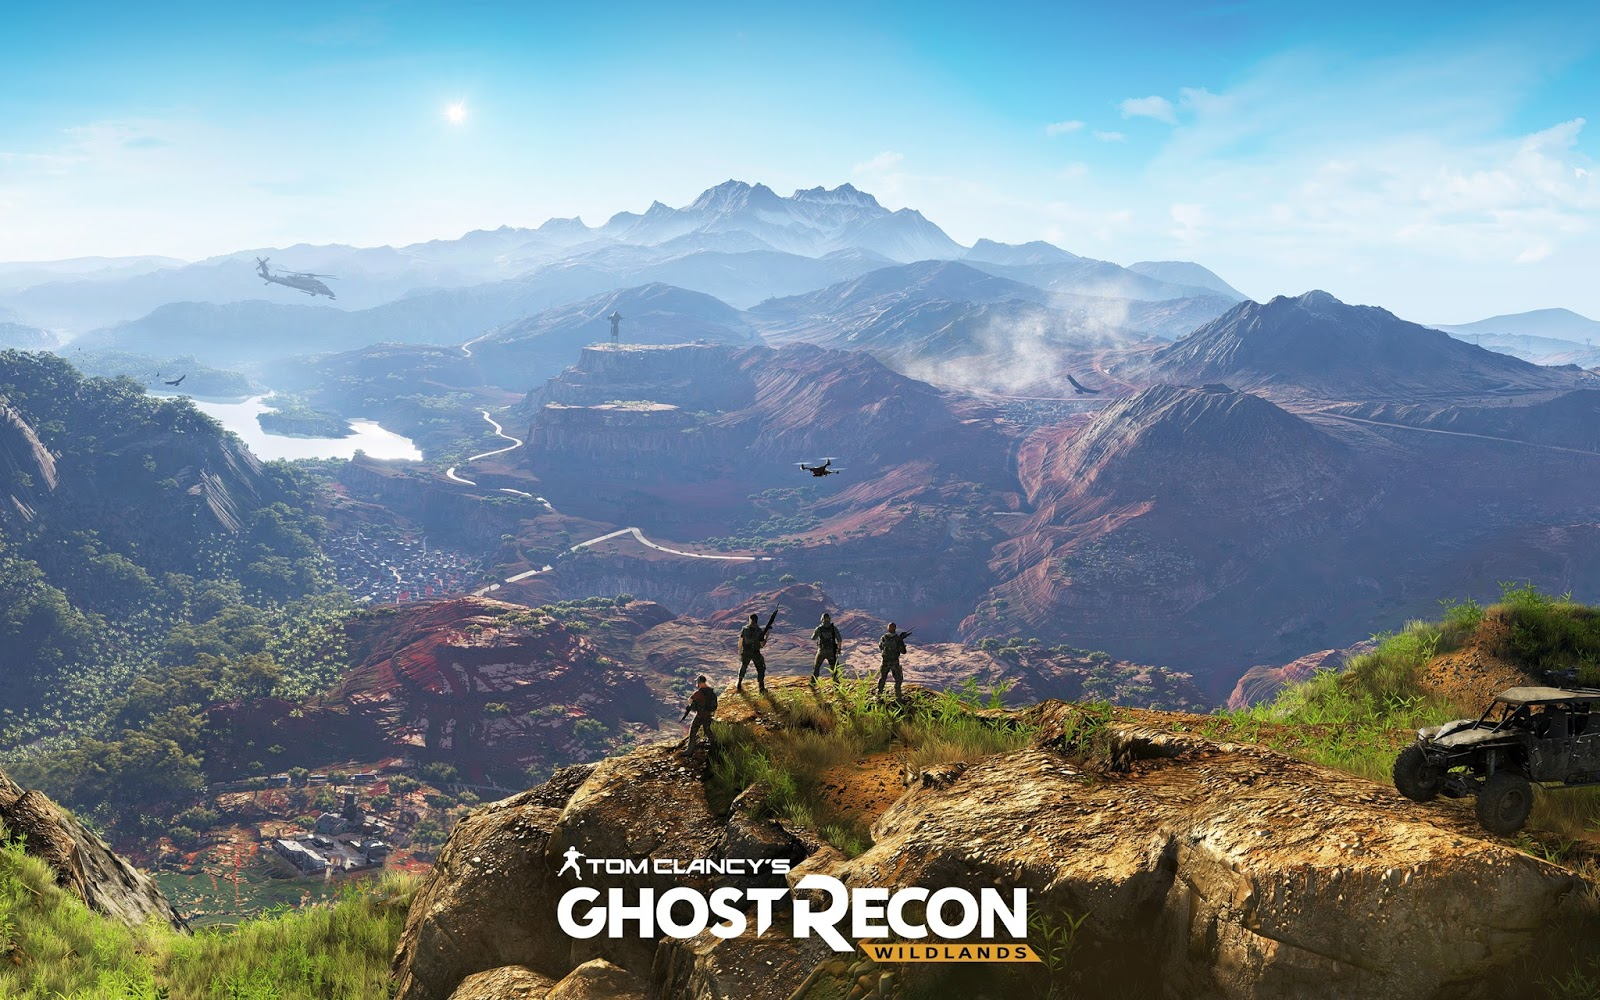 تحميل لعبة tom clancy's ghost recon wildlands